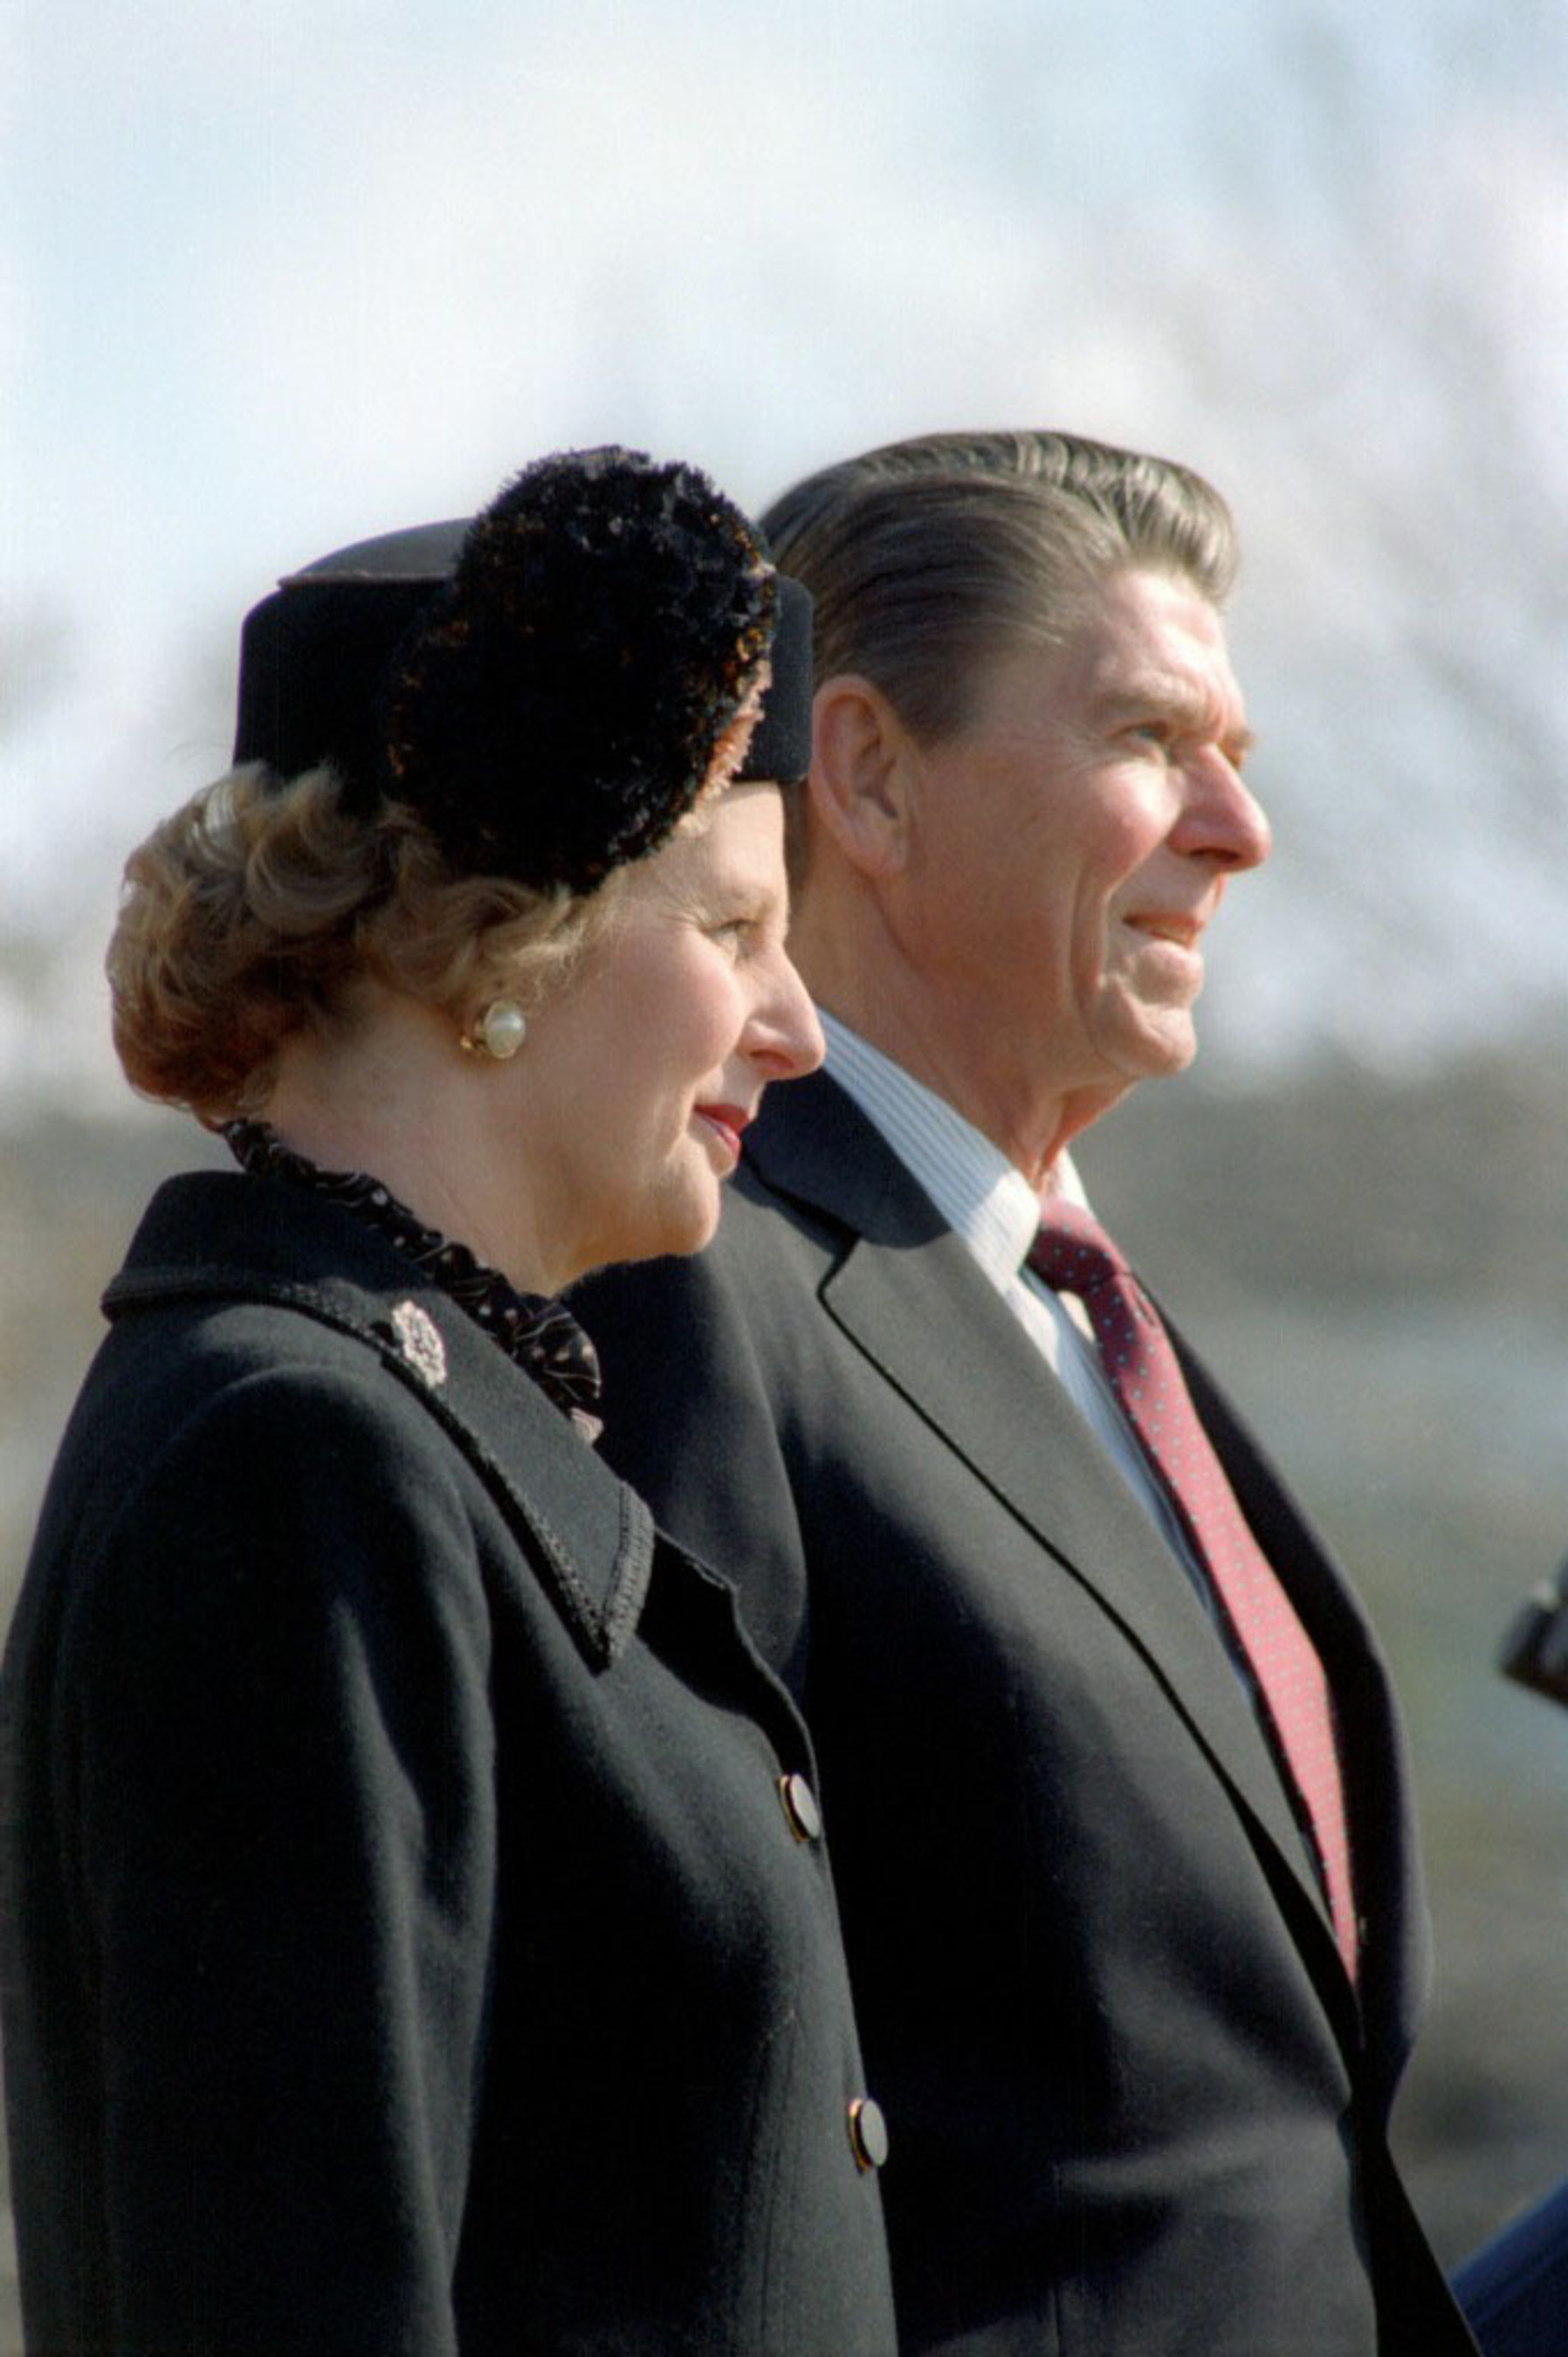 President Ronald Reagan and Prime Minister Margaret Thatcher featured in National Churchill Museum Exhibit through March 9, 2014.  (PRNewsFoto/National Churchill Museum)